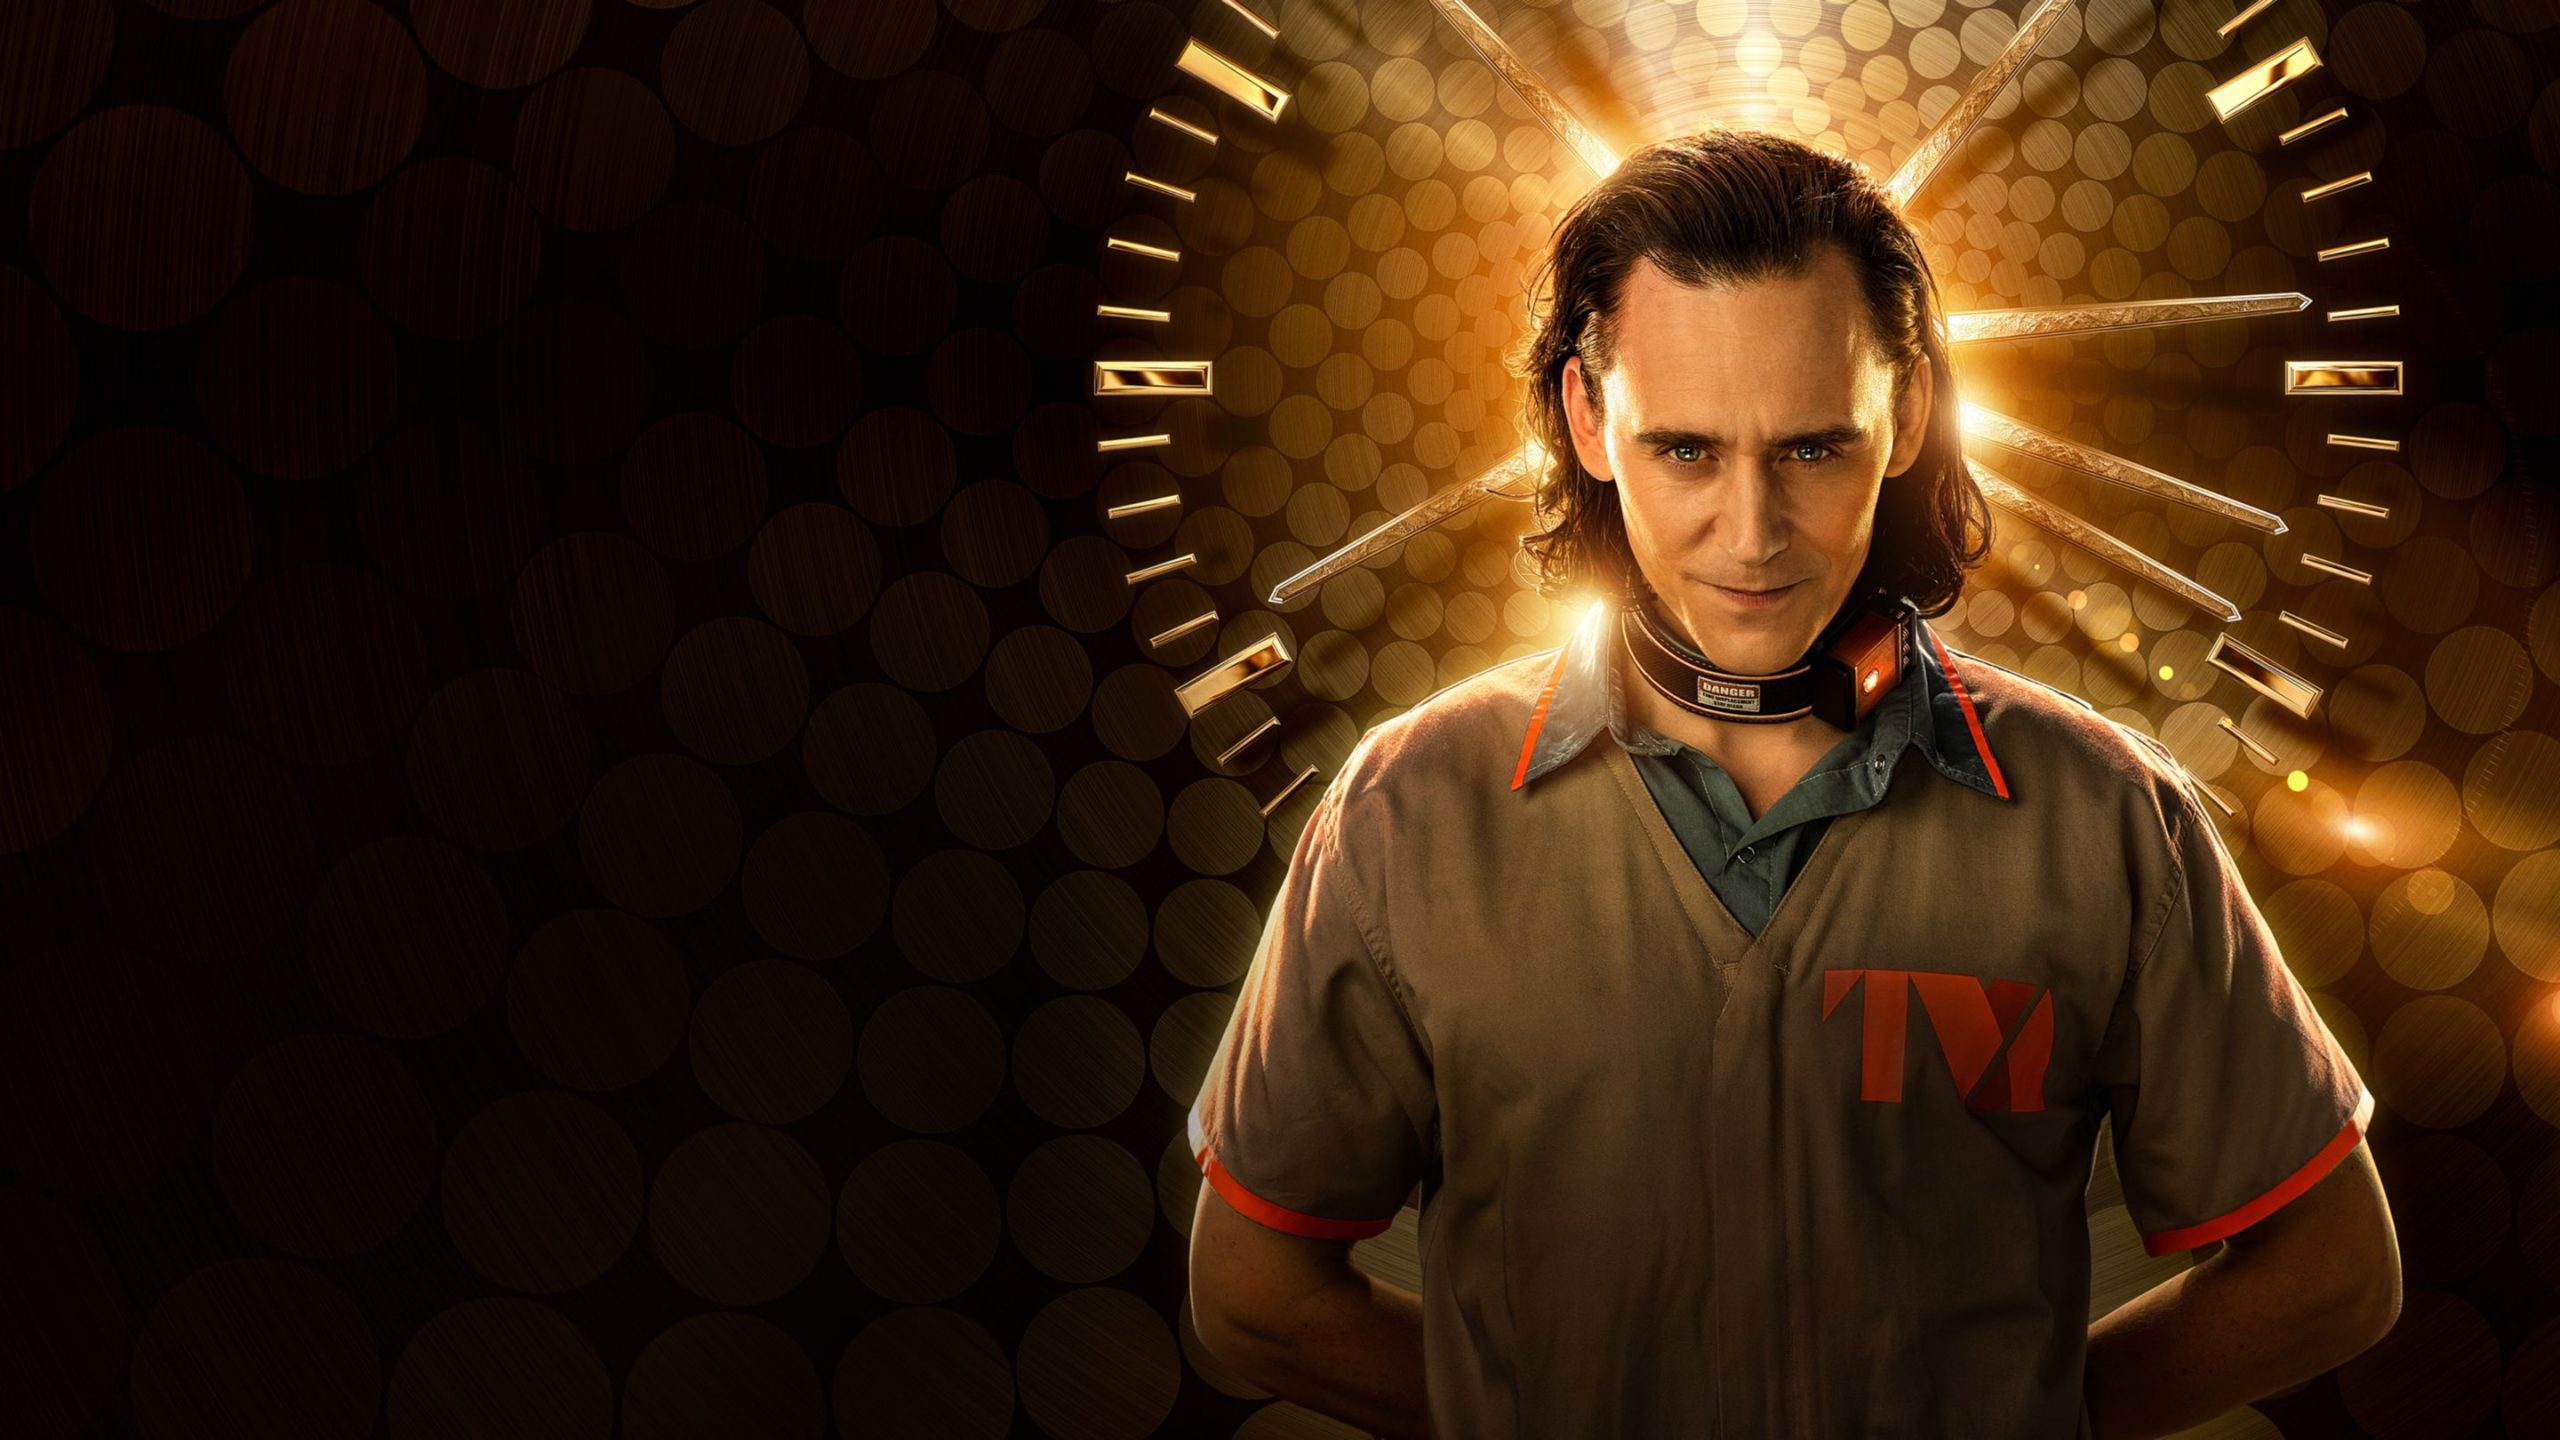 Mischievous 'Loki' messes with time in new Disney+ series